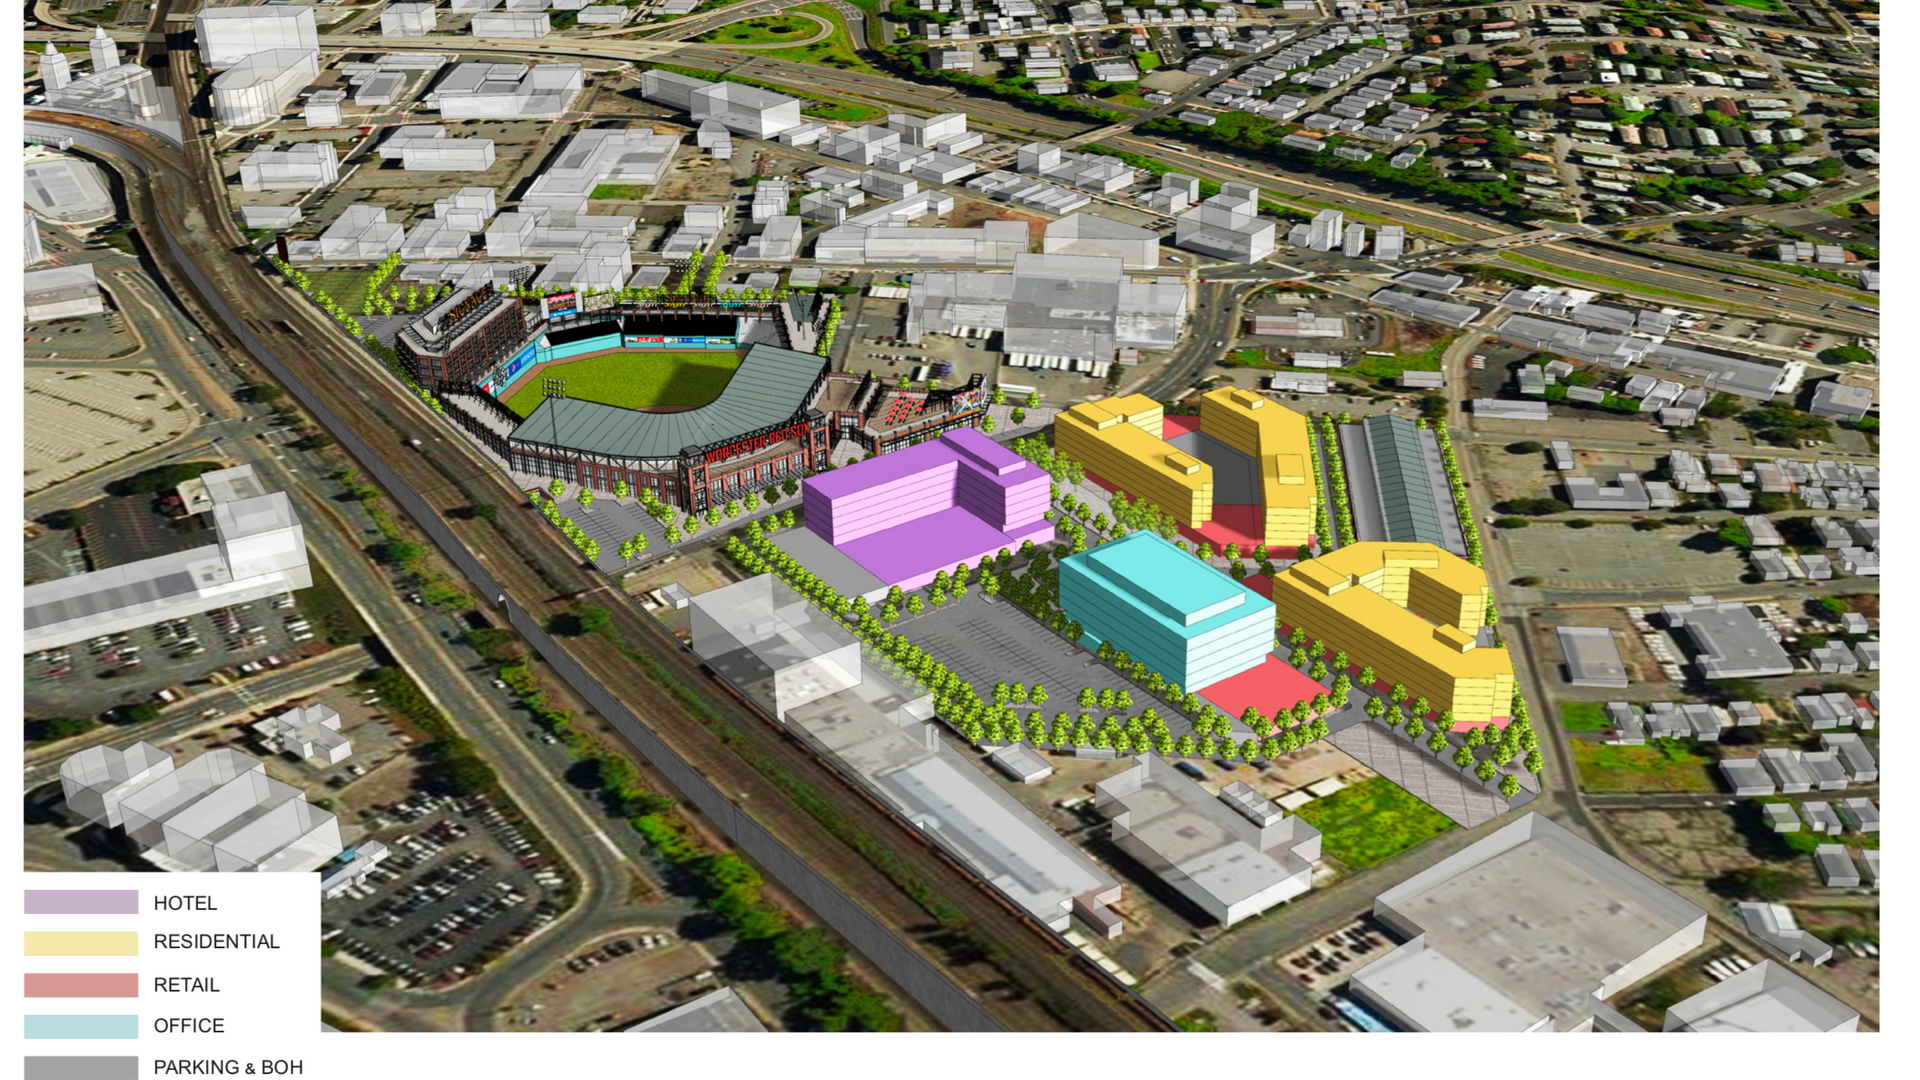 Mixed Use Ballpark Plan